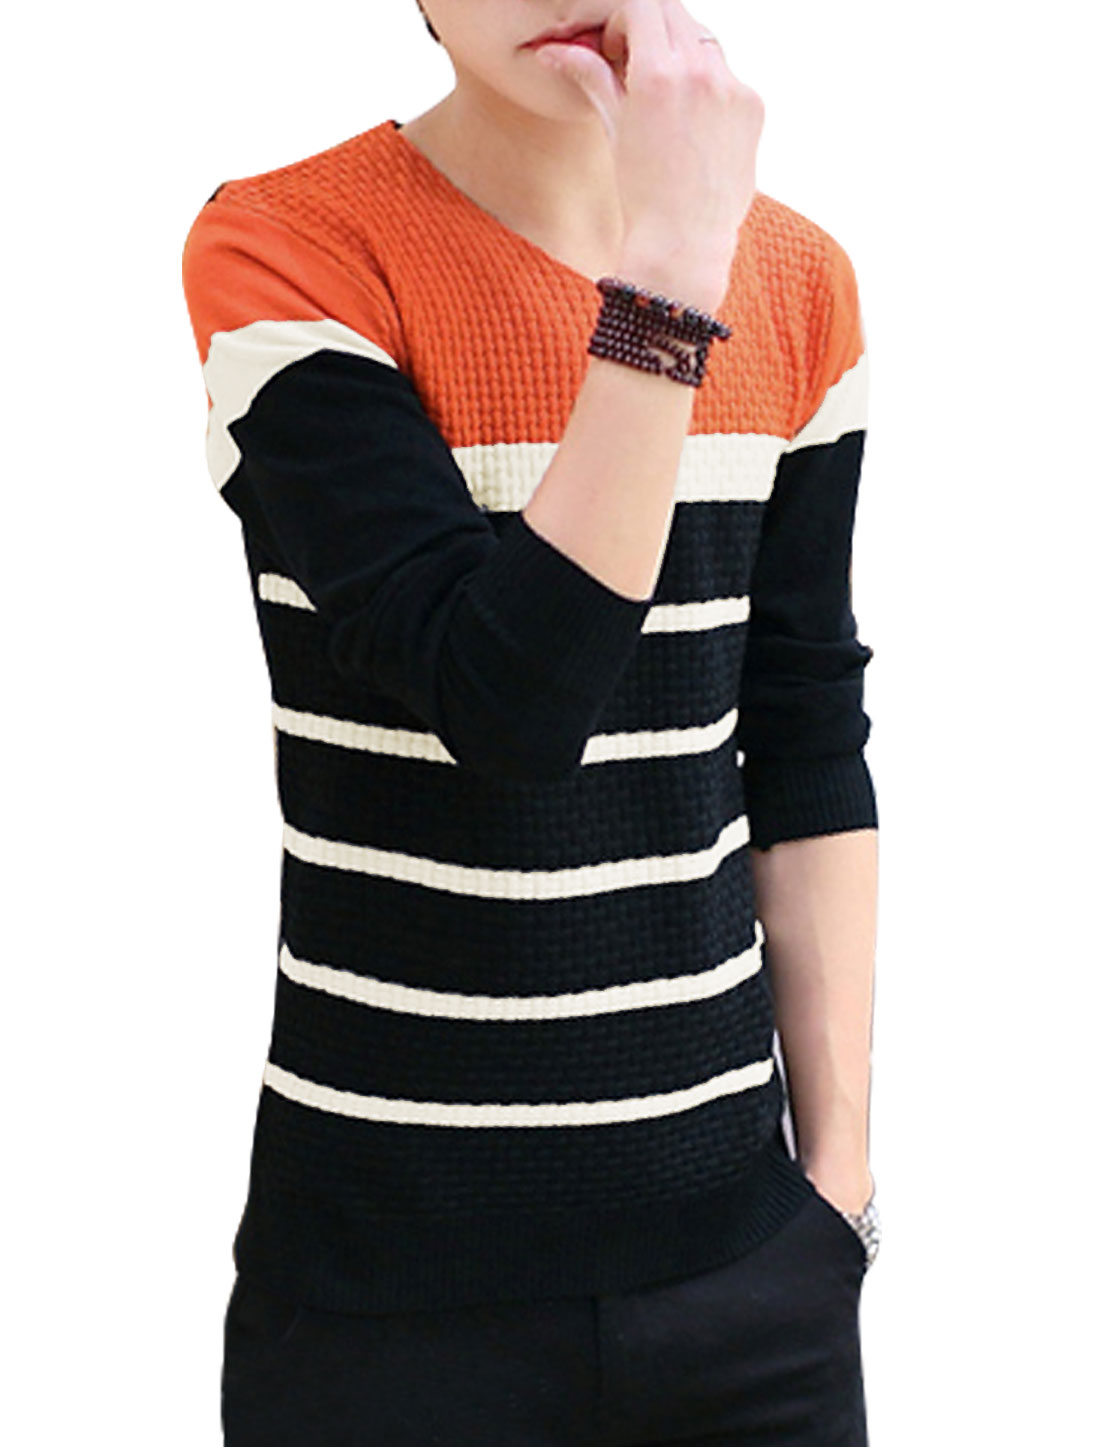 Men Contrast Color Bar Striped Slipover Knit Shirt Orange Black S